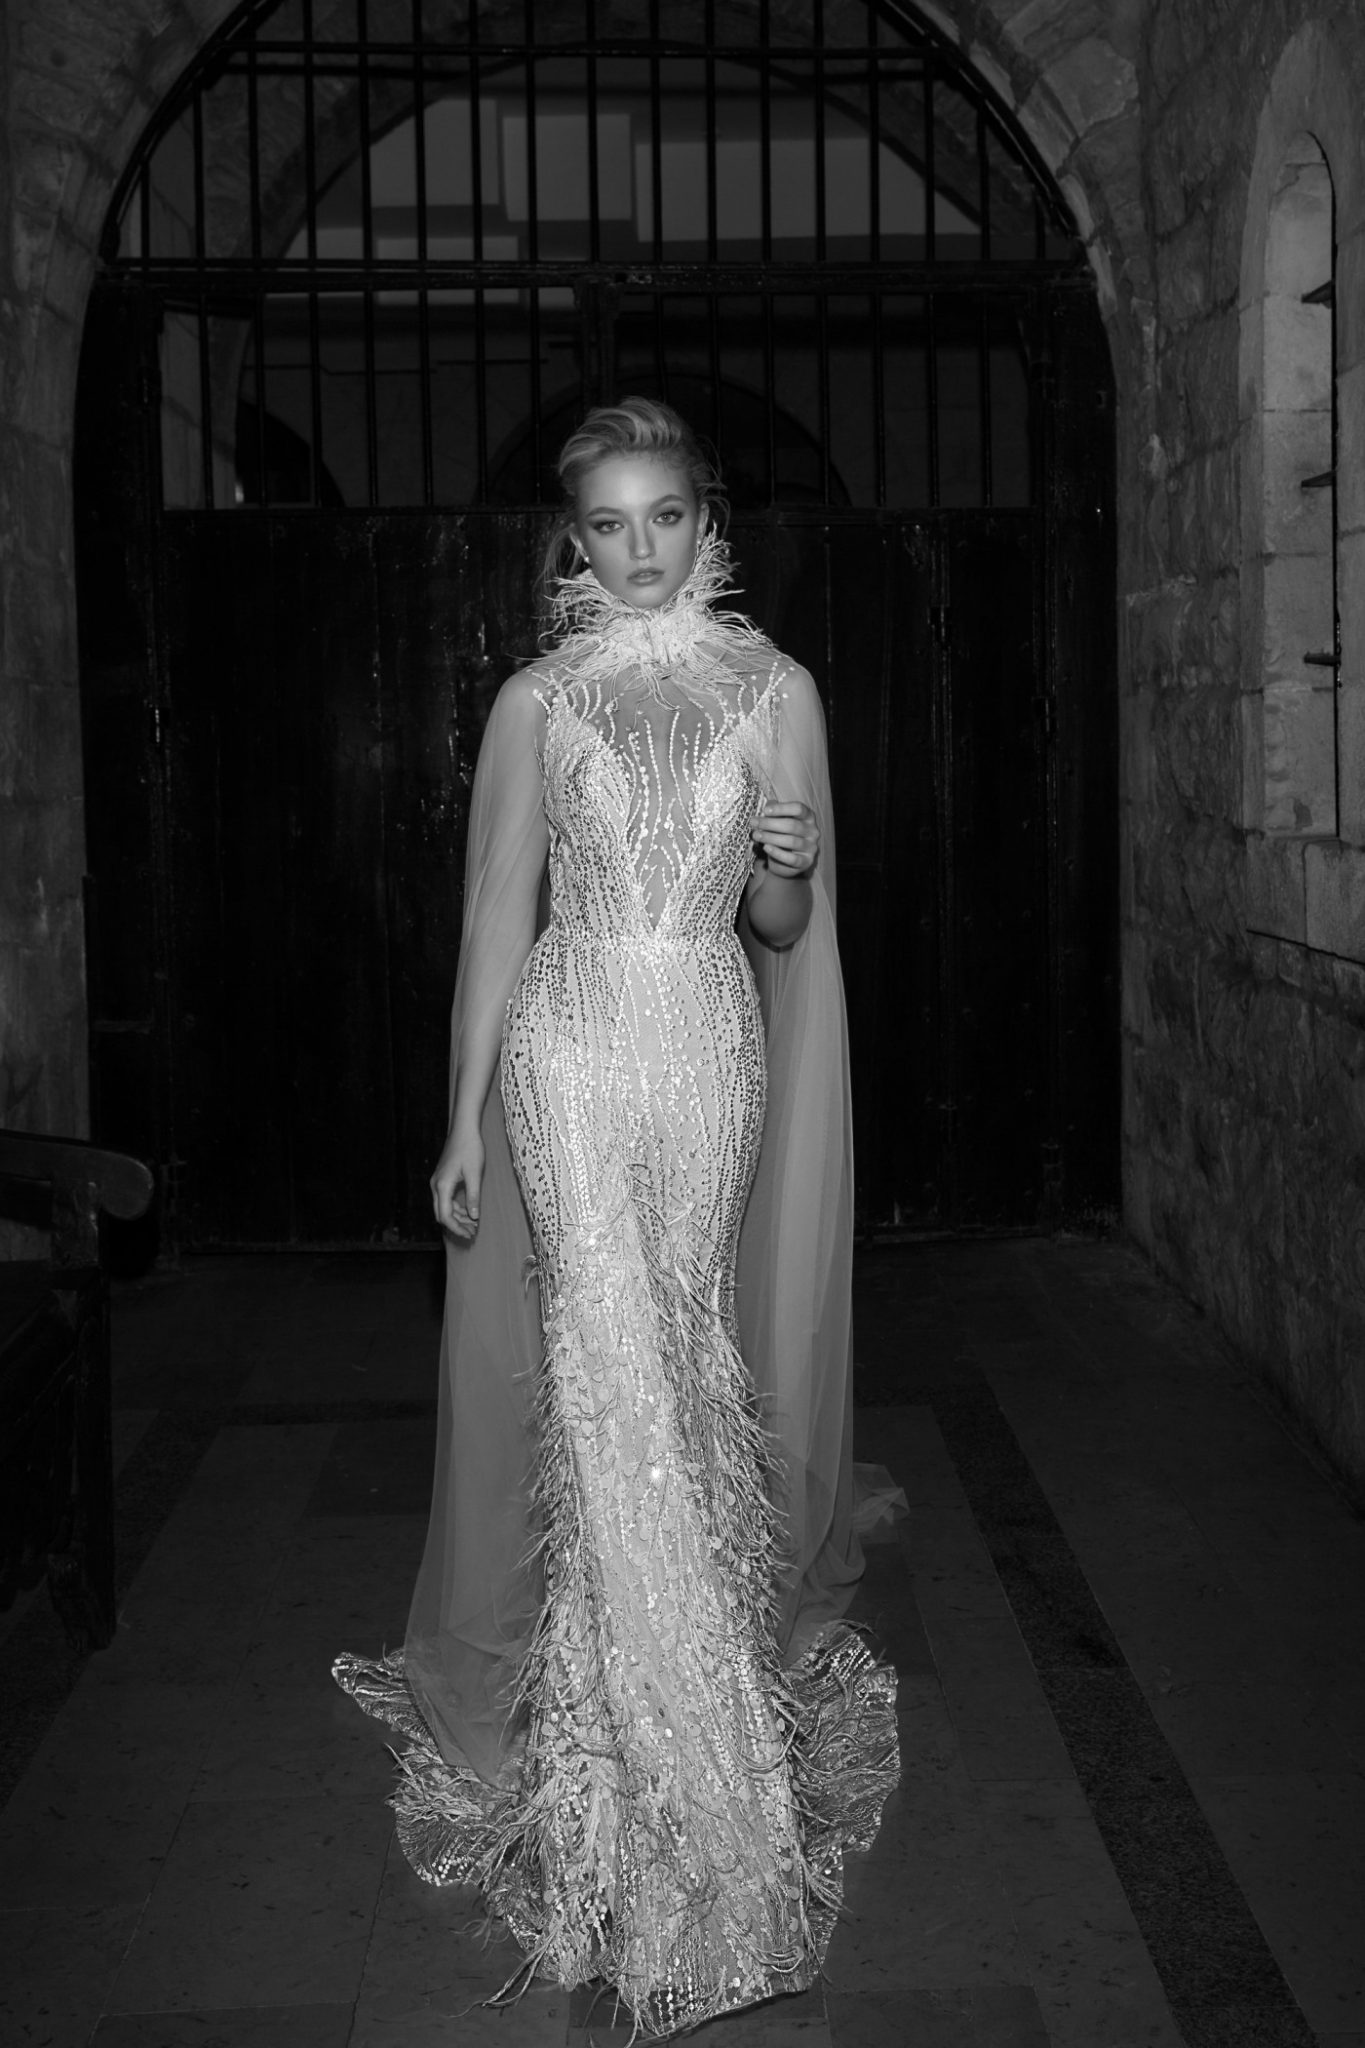 684fb73965f9f A stunning dress from Dany Mizrachi, one of Israel's top bridal fashion  designers. Photo